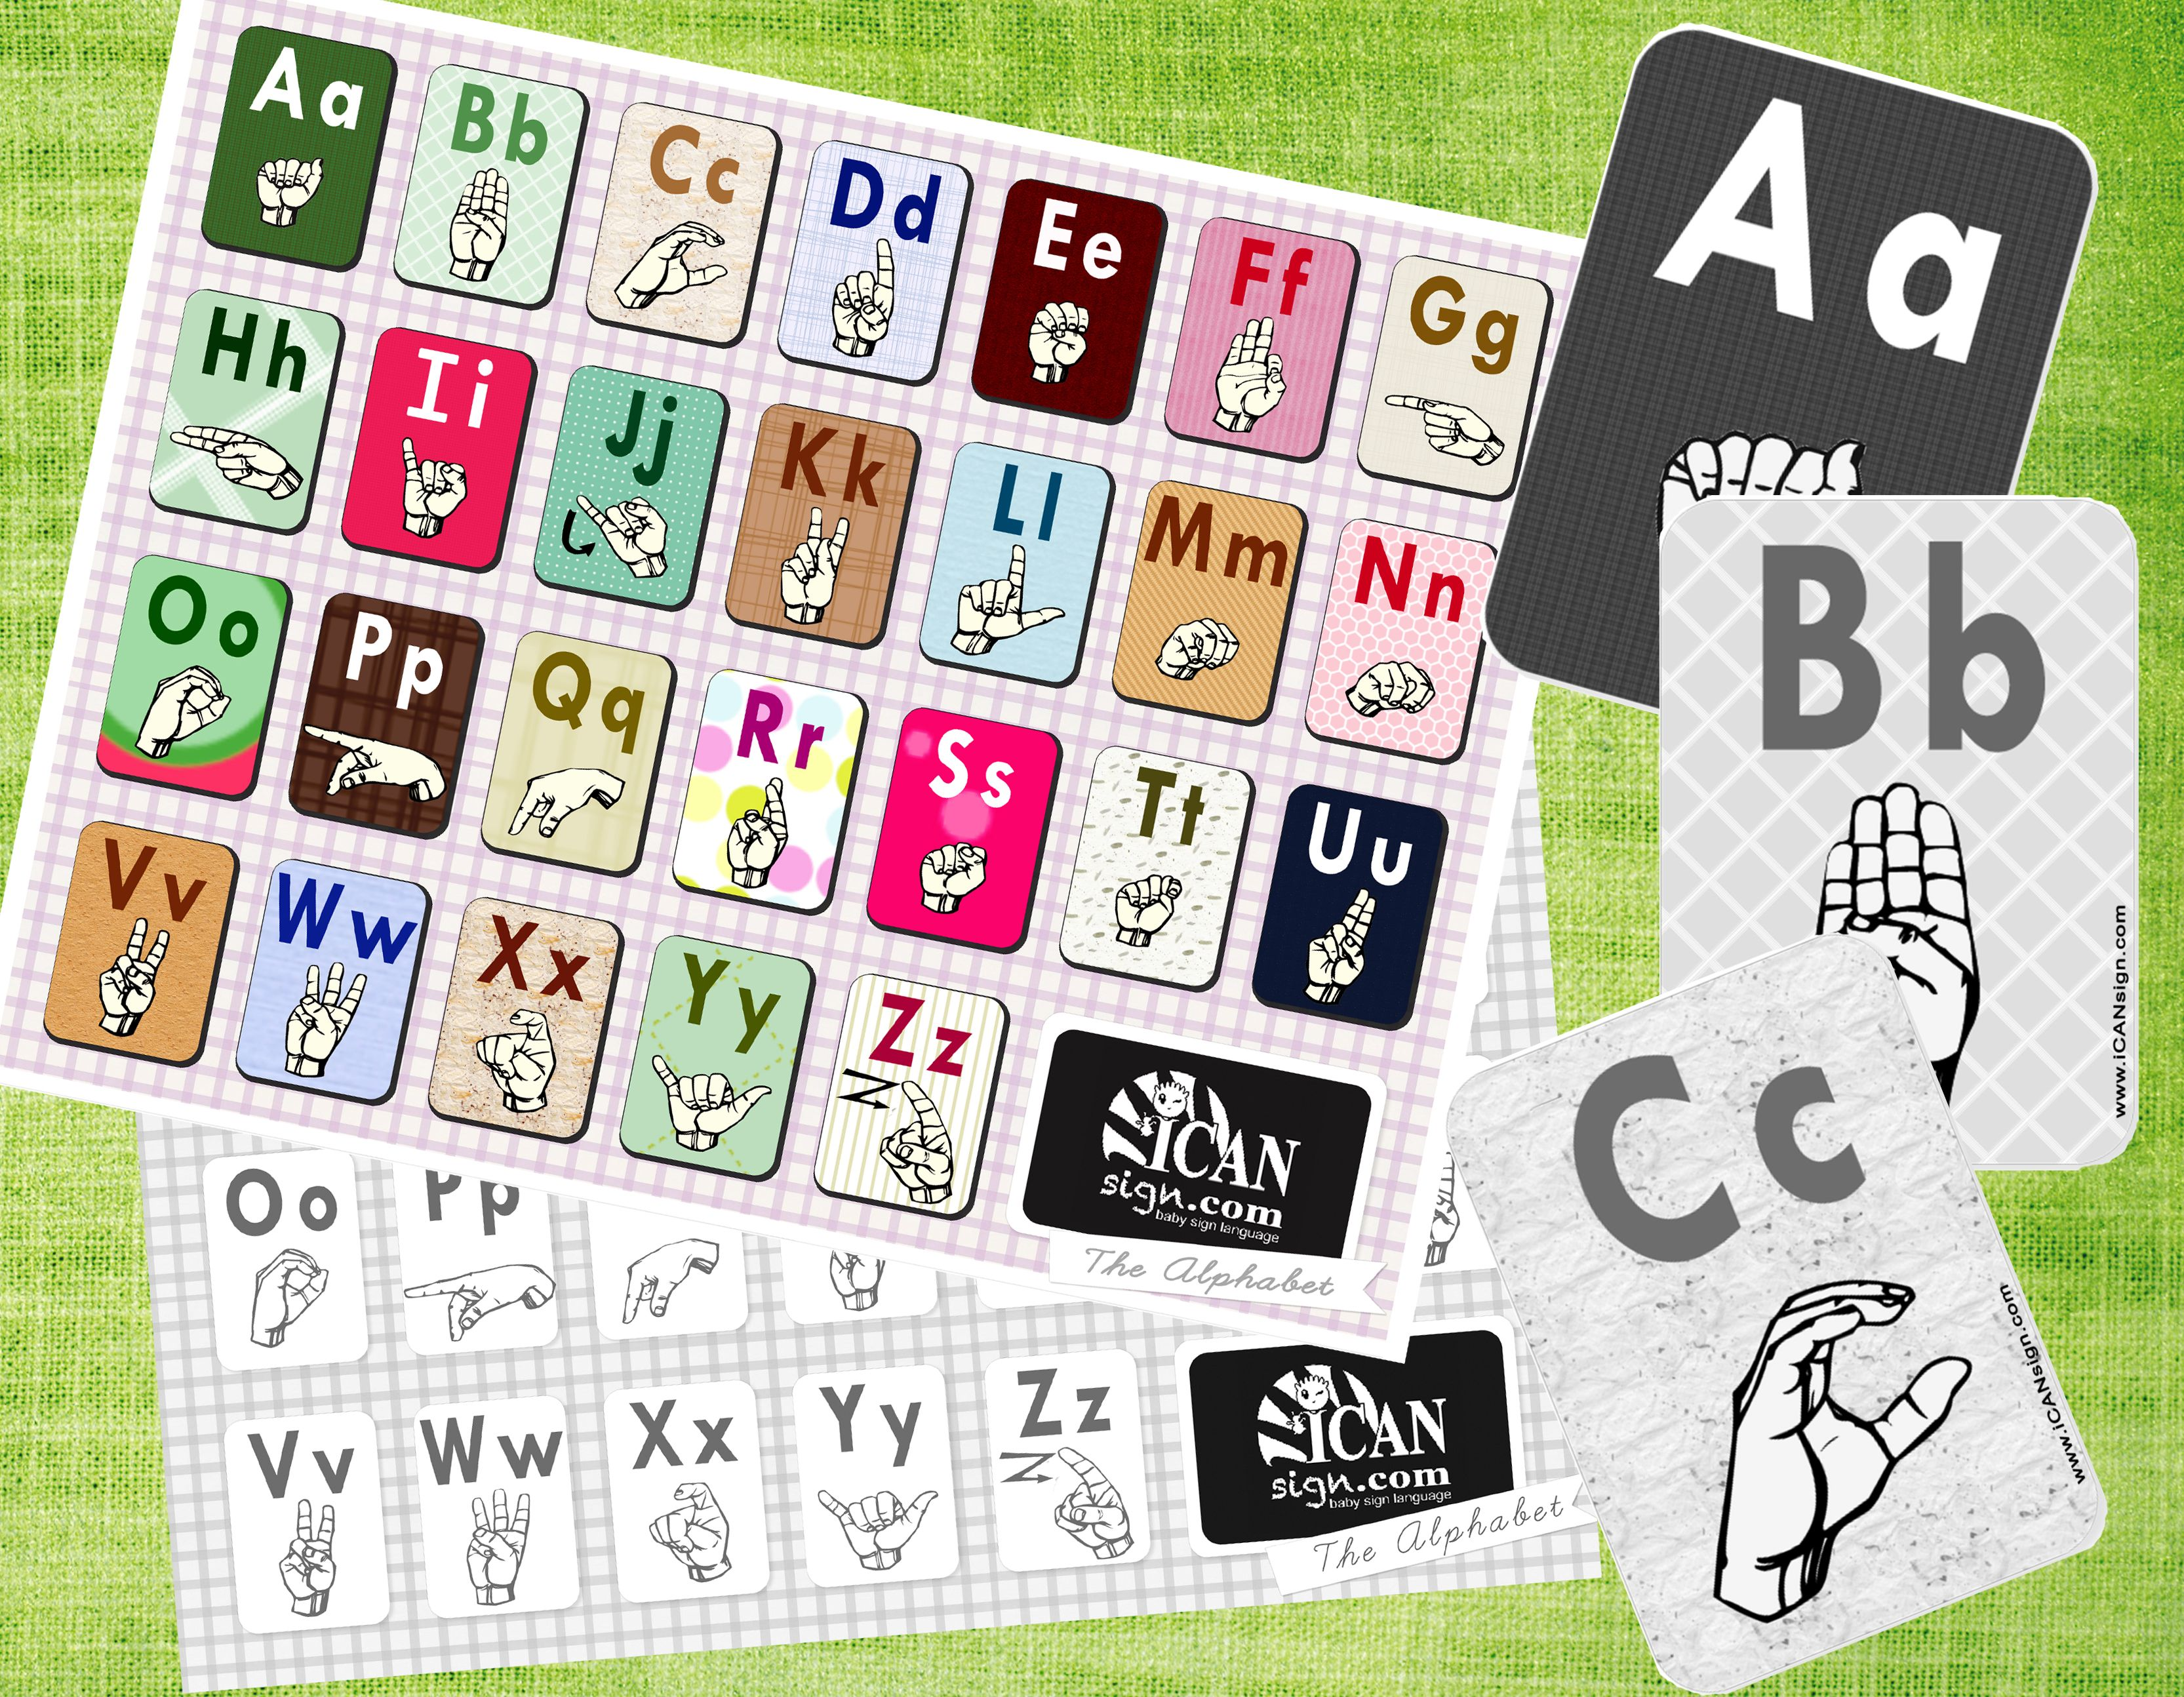 Asl Alphabet Chart And Asl Alphabet Flashcards The Kids Can Look Can The Chart And Spell Each